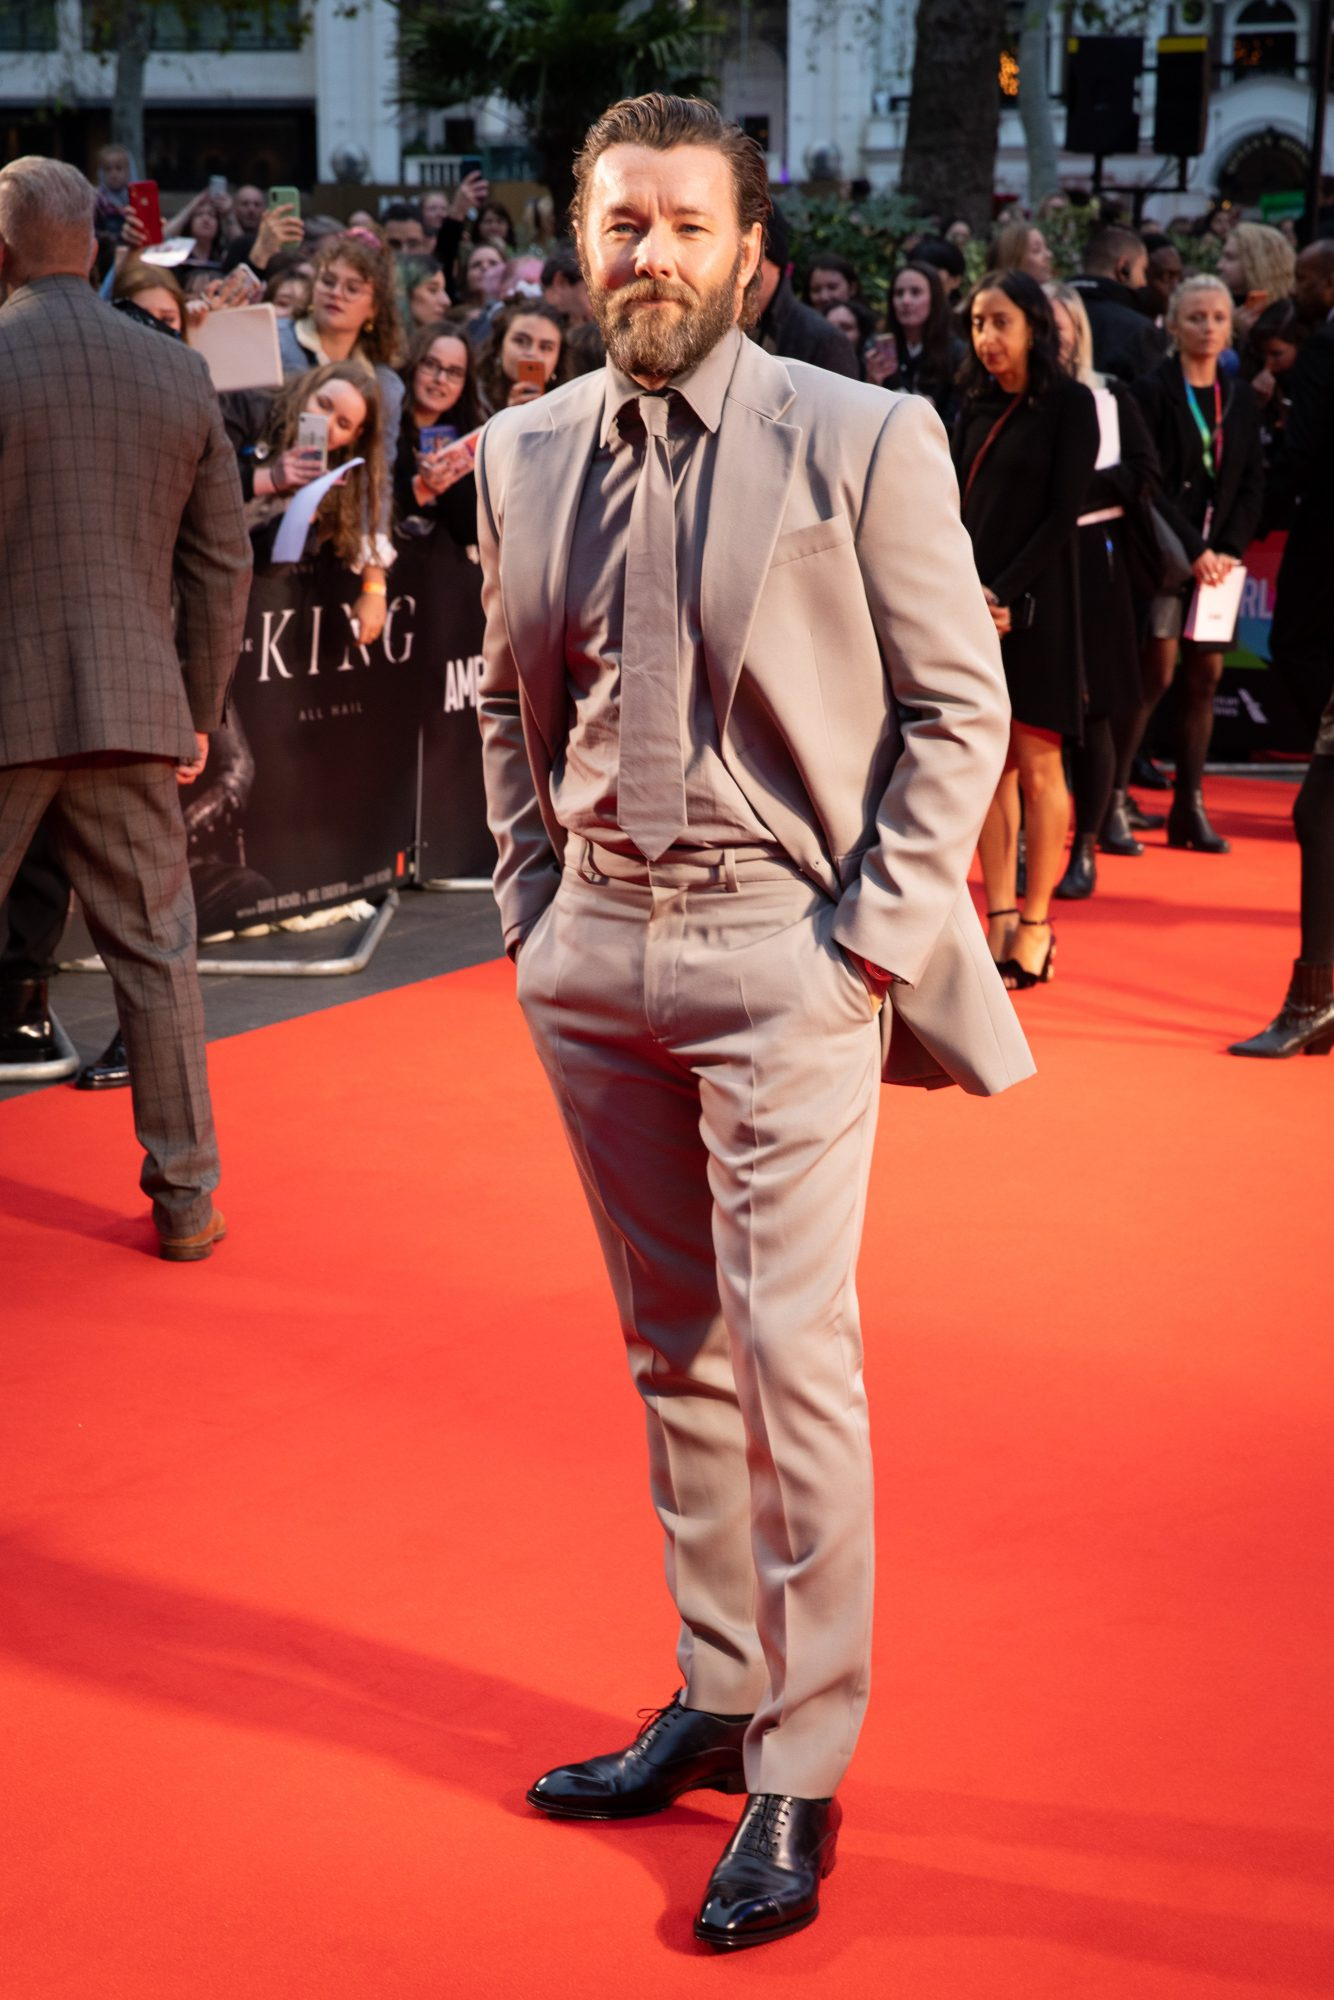 Joel Edgerton at The King UK Premiere during the 63rd BFI London Film Festival at Odeon Luxe Leicester Square on 3rd October 2019.  Photos: Netflix